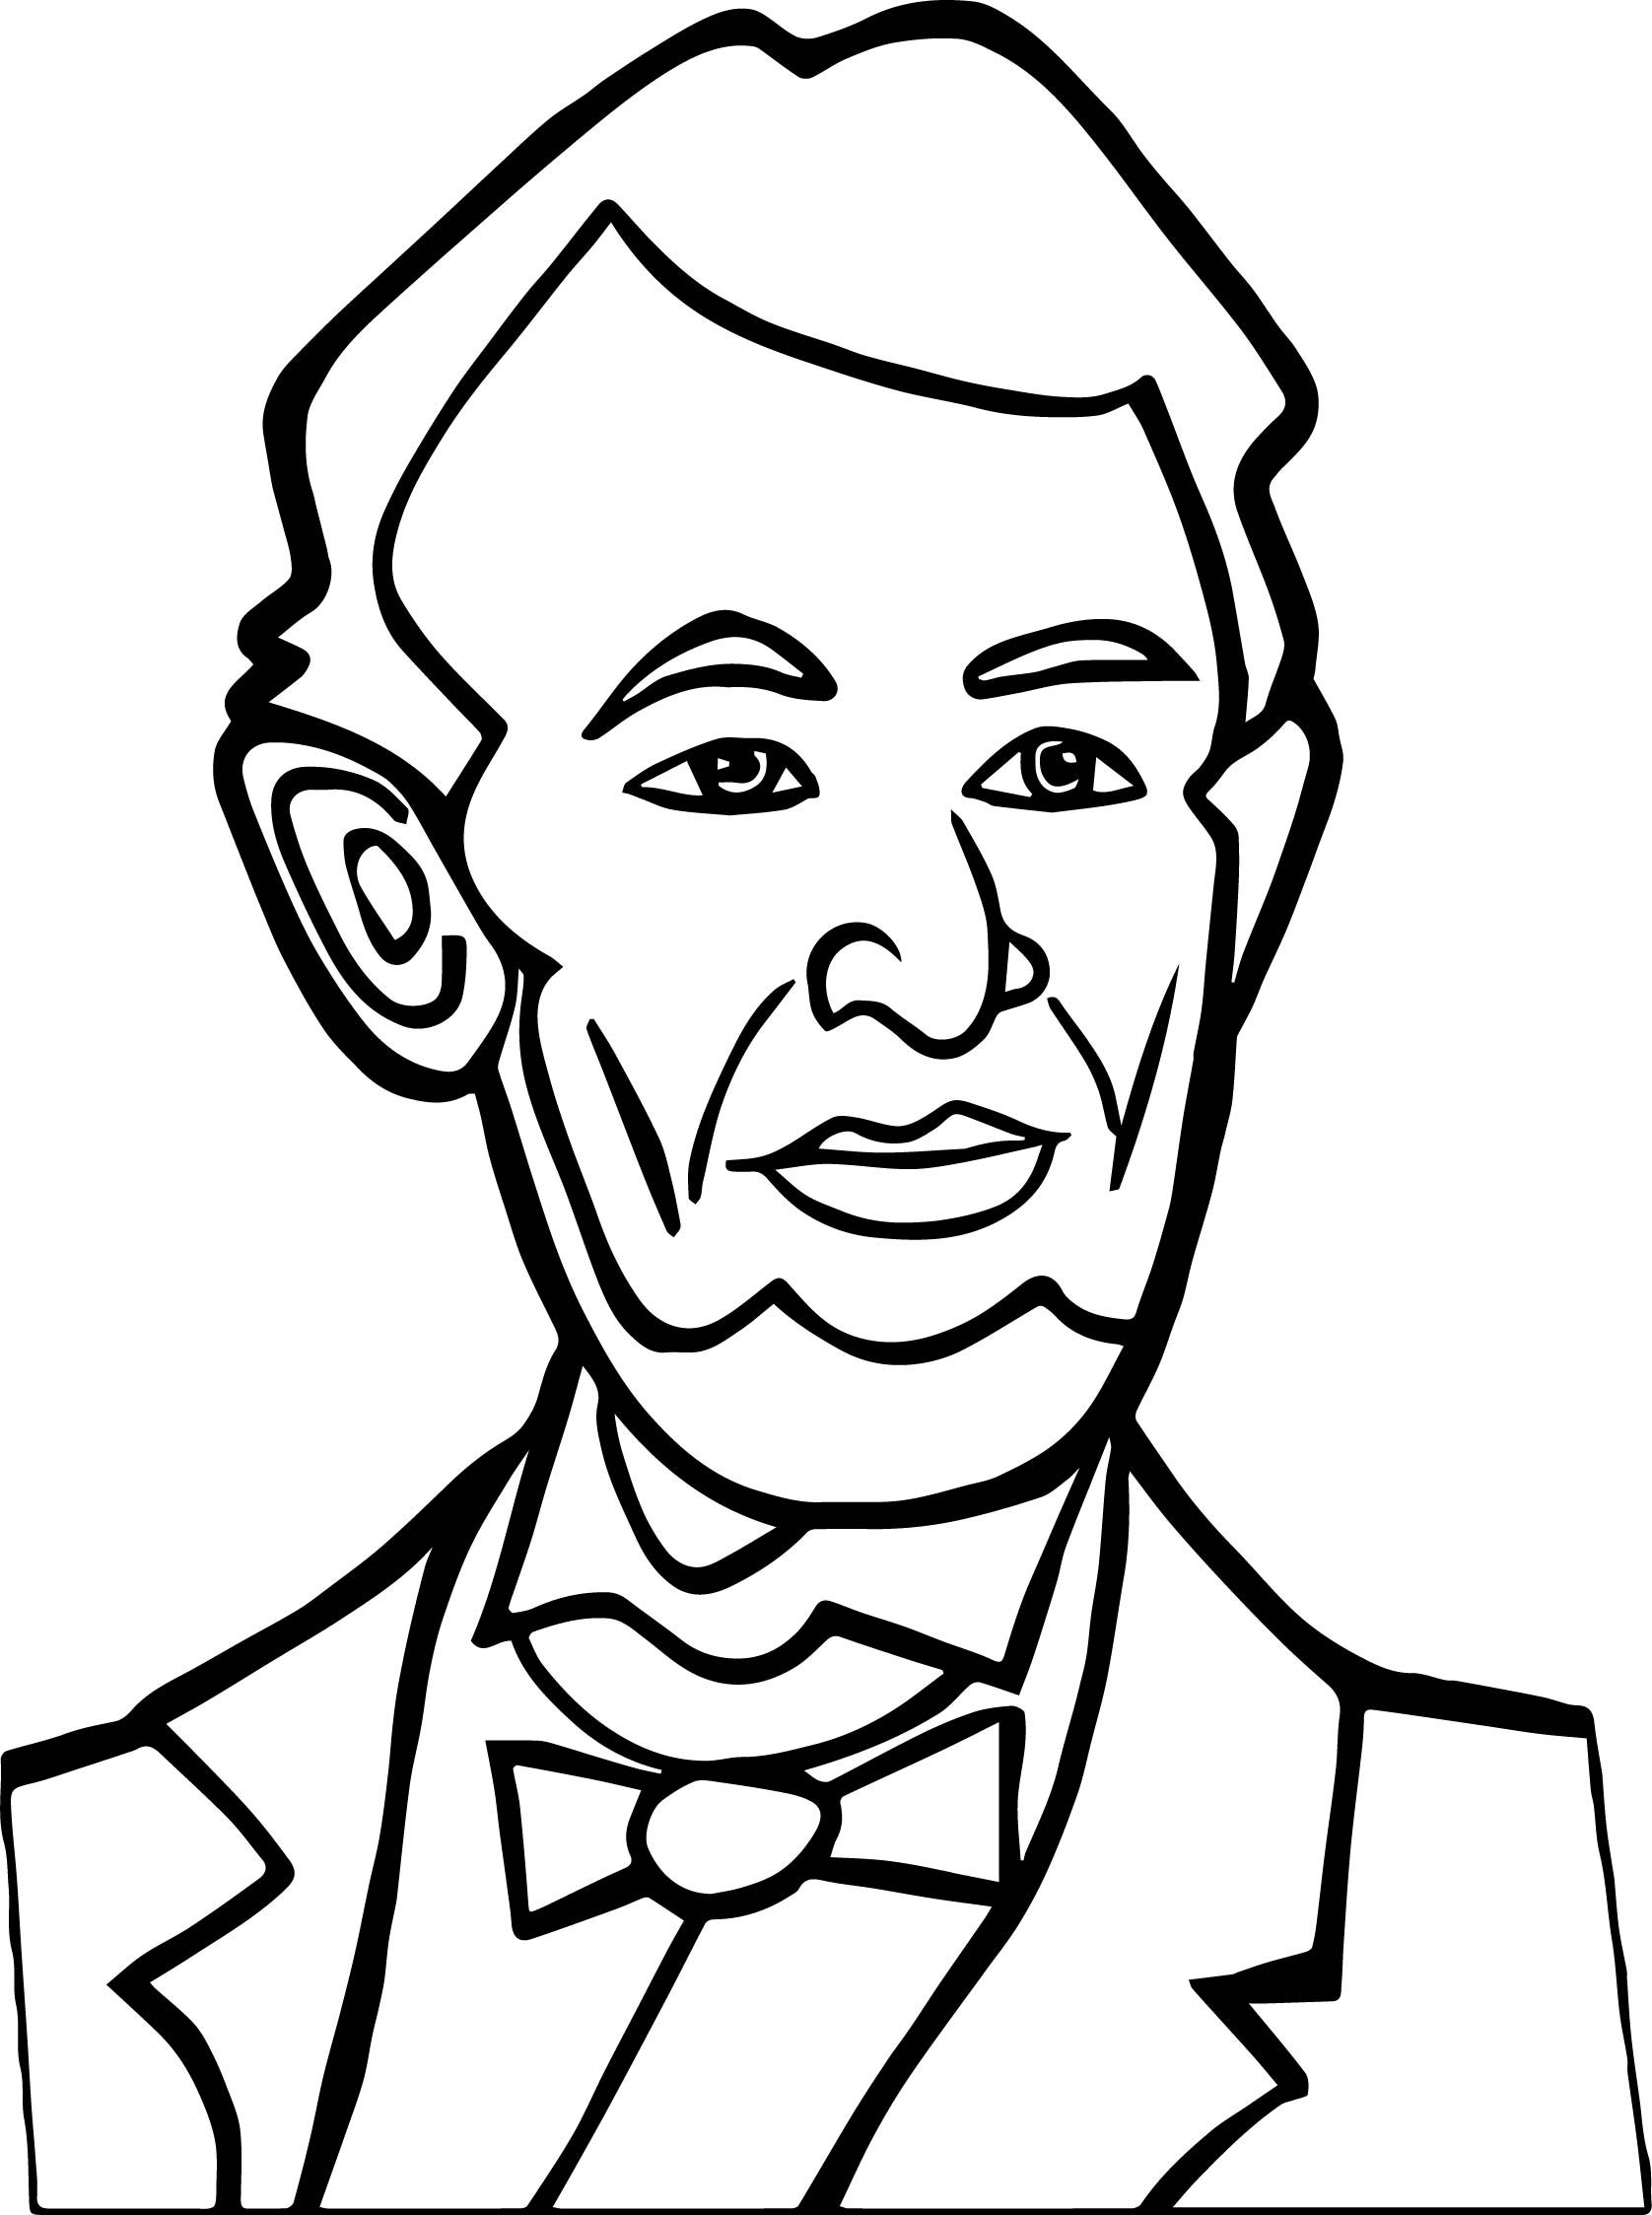 abraham lincoln coloring page abraham lincoln coloring pages for kindergarten at abraham page lincoln coloring